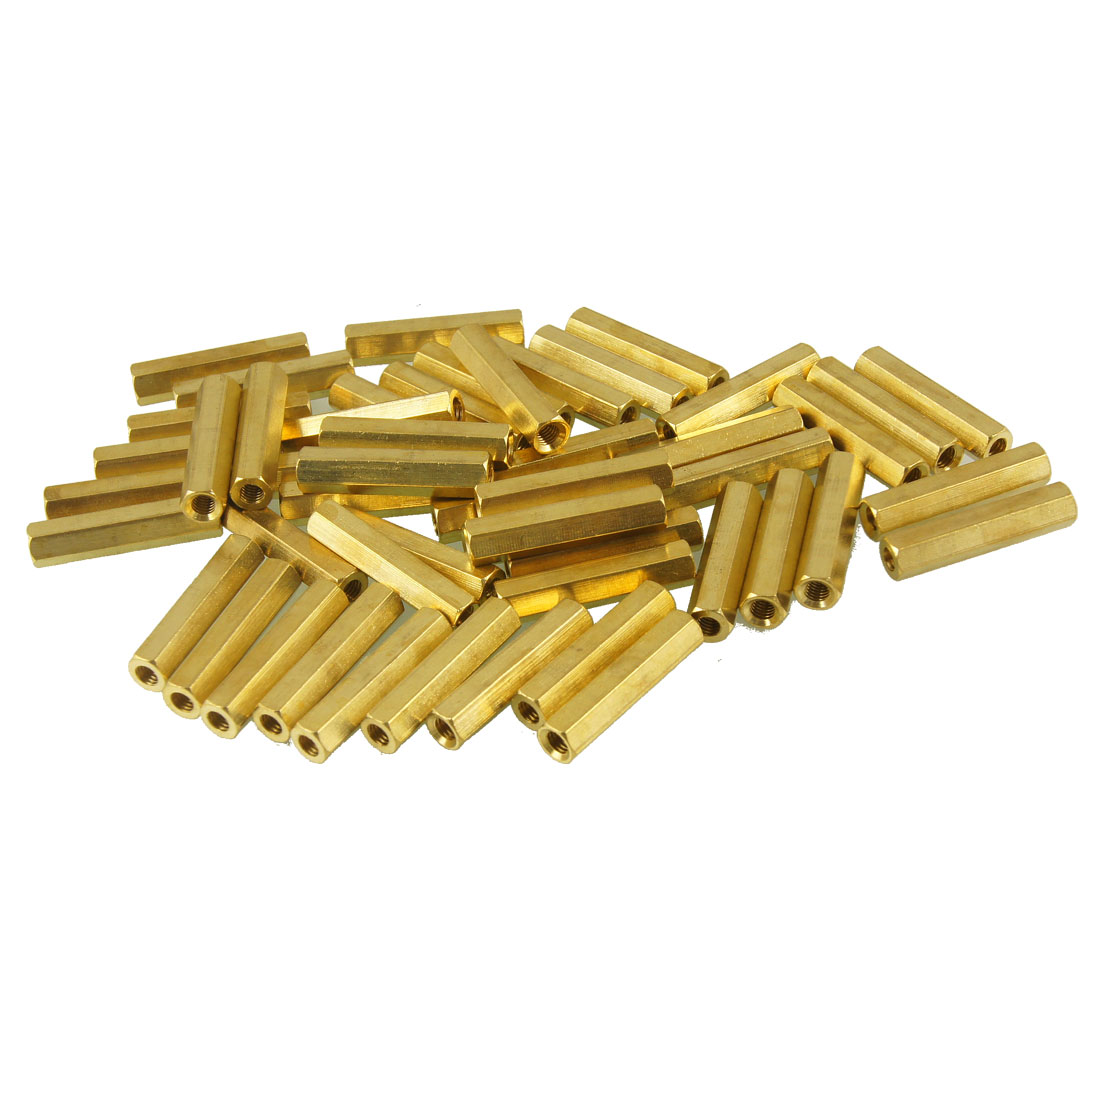 50 Pcs Female Thread Hexagonal PCB Standoff Spacer M3x22